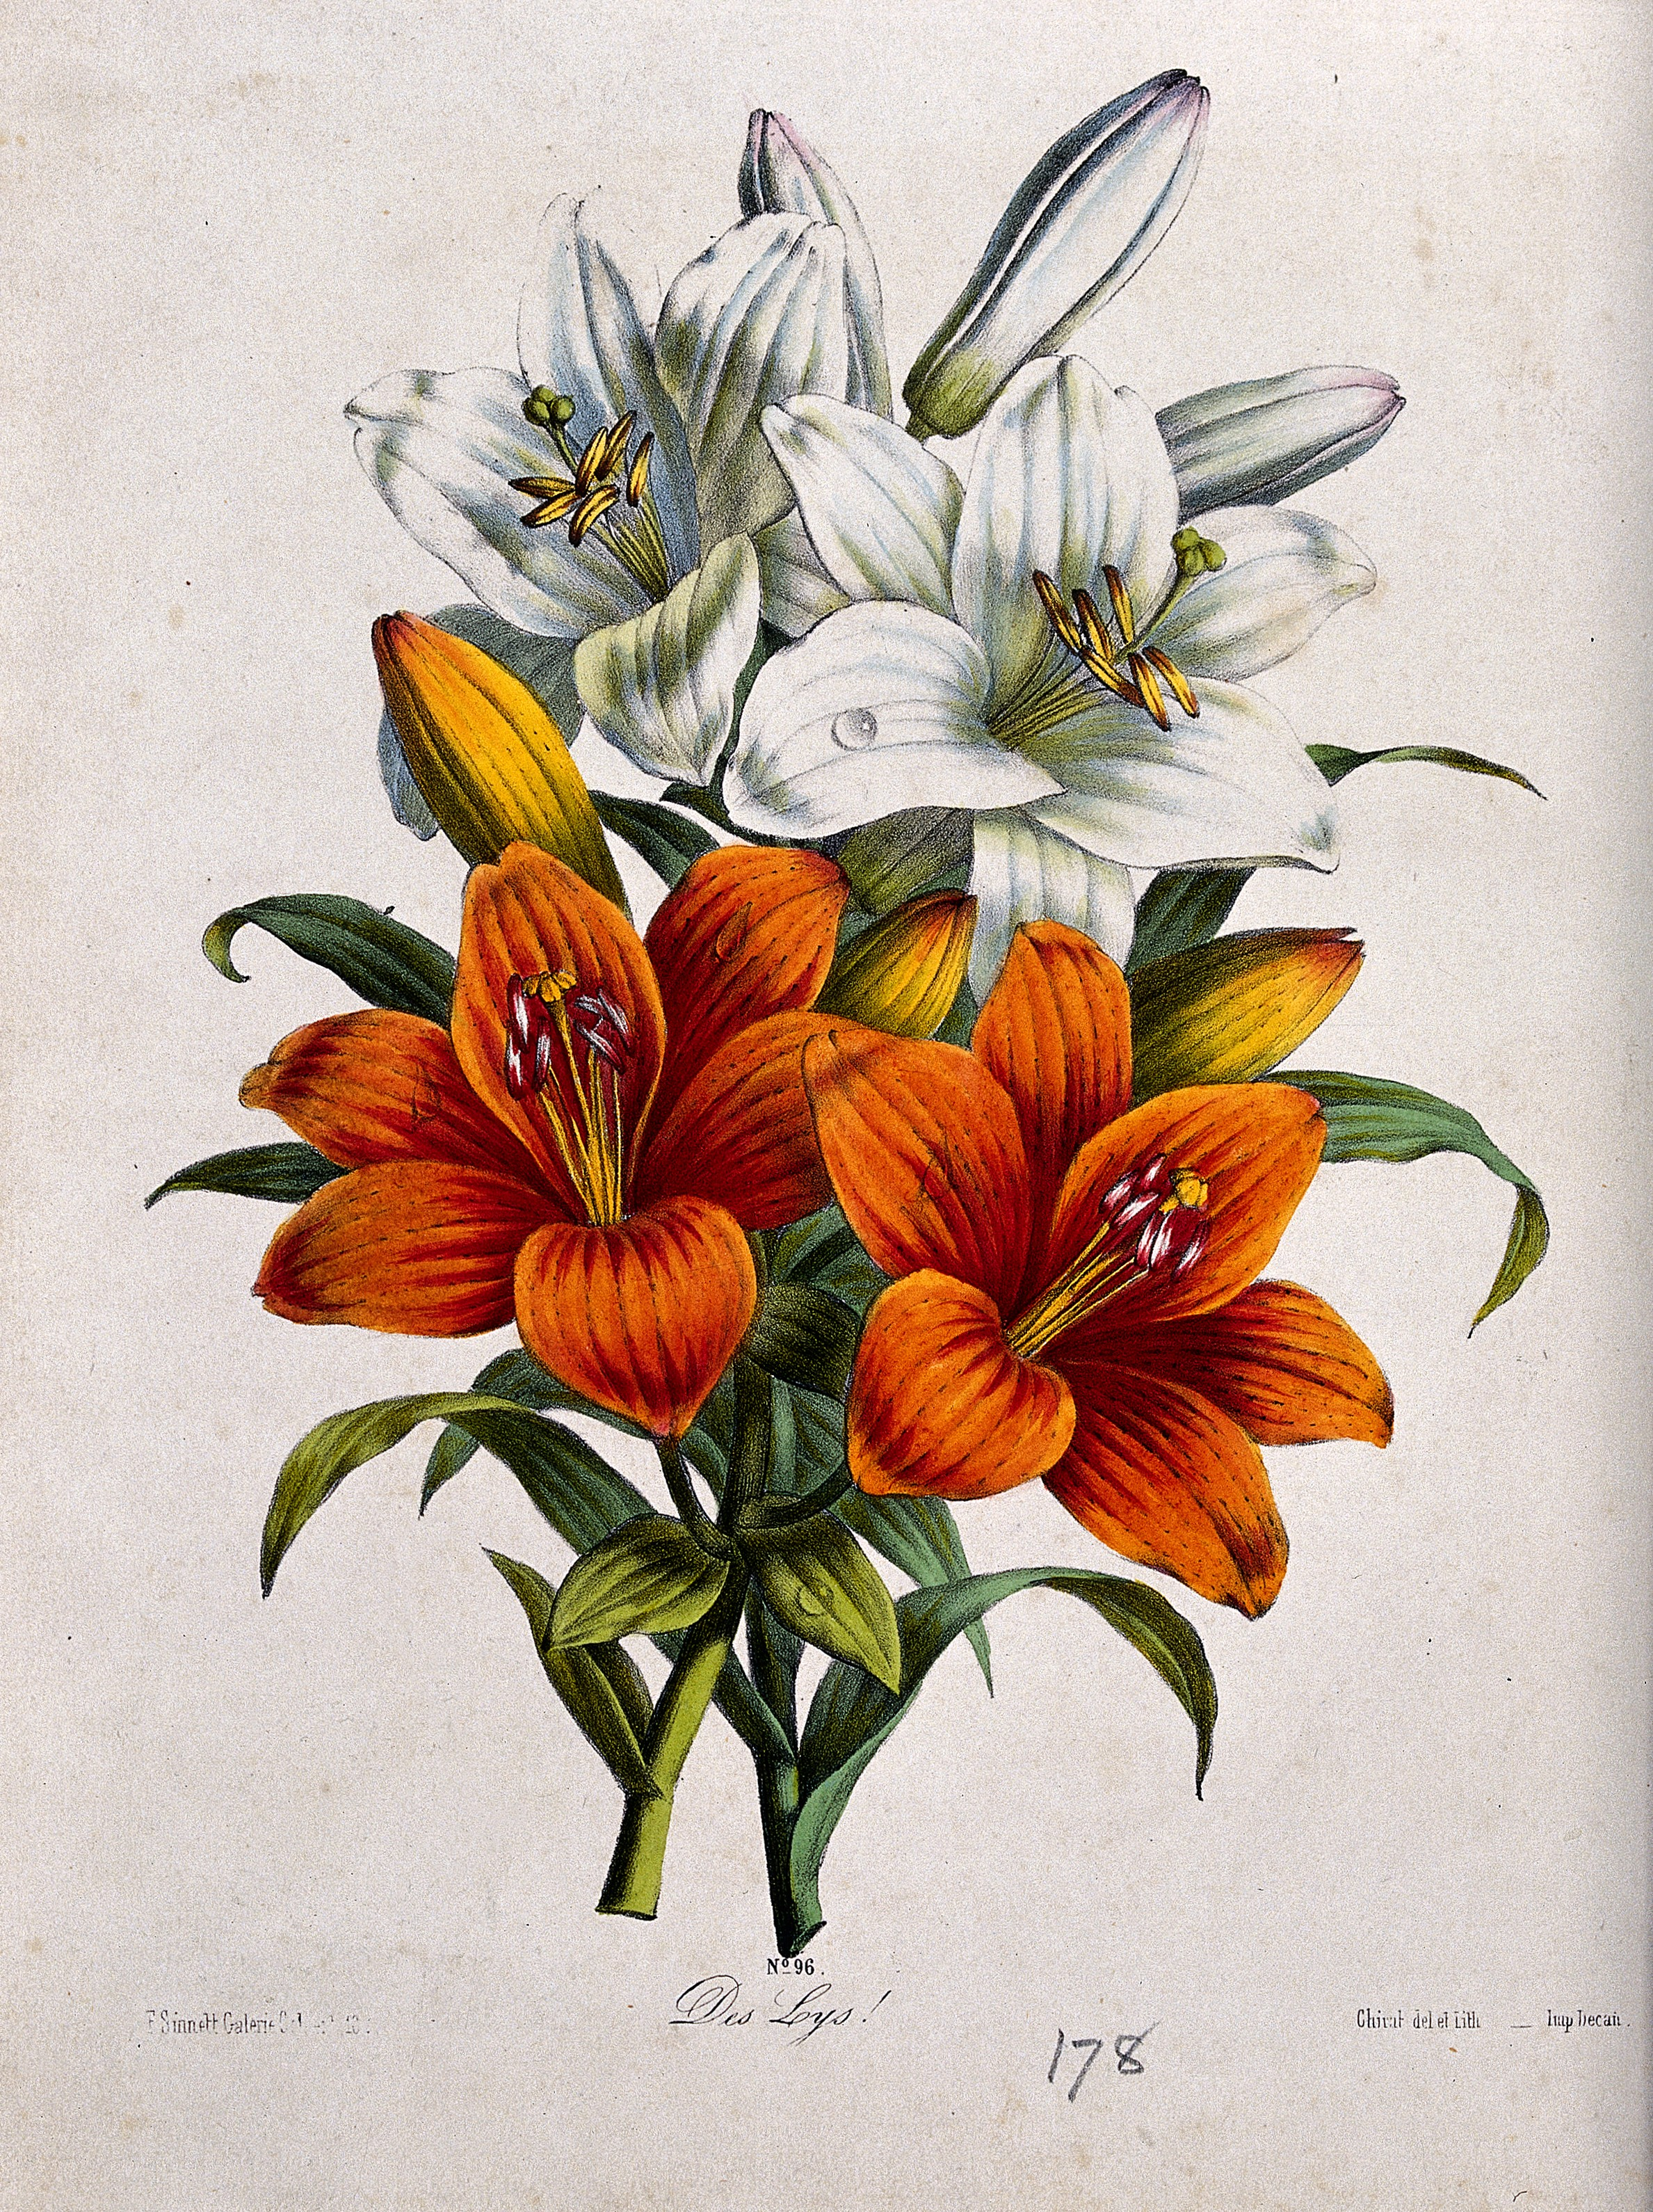 Filea bunch of orange and white lily flowers coloured lithograp filea bunch of orange and white lily flowers coloured lithograp wellcome v0044589 izmirmasajfo